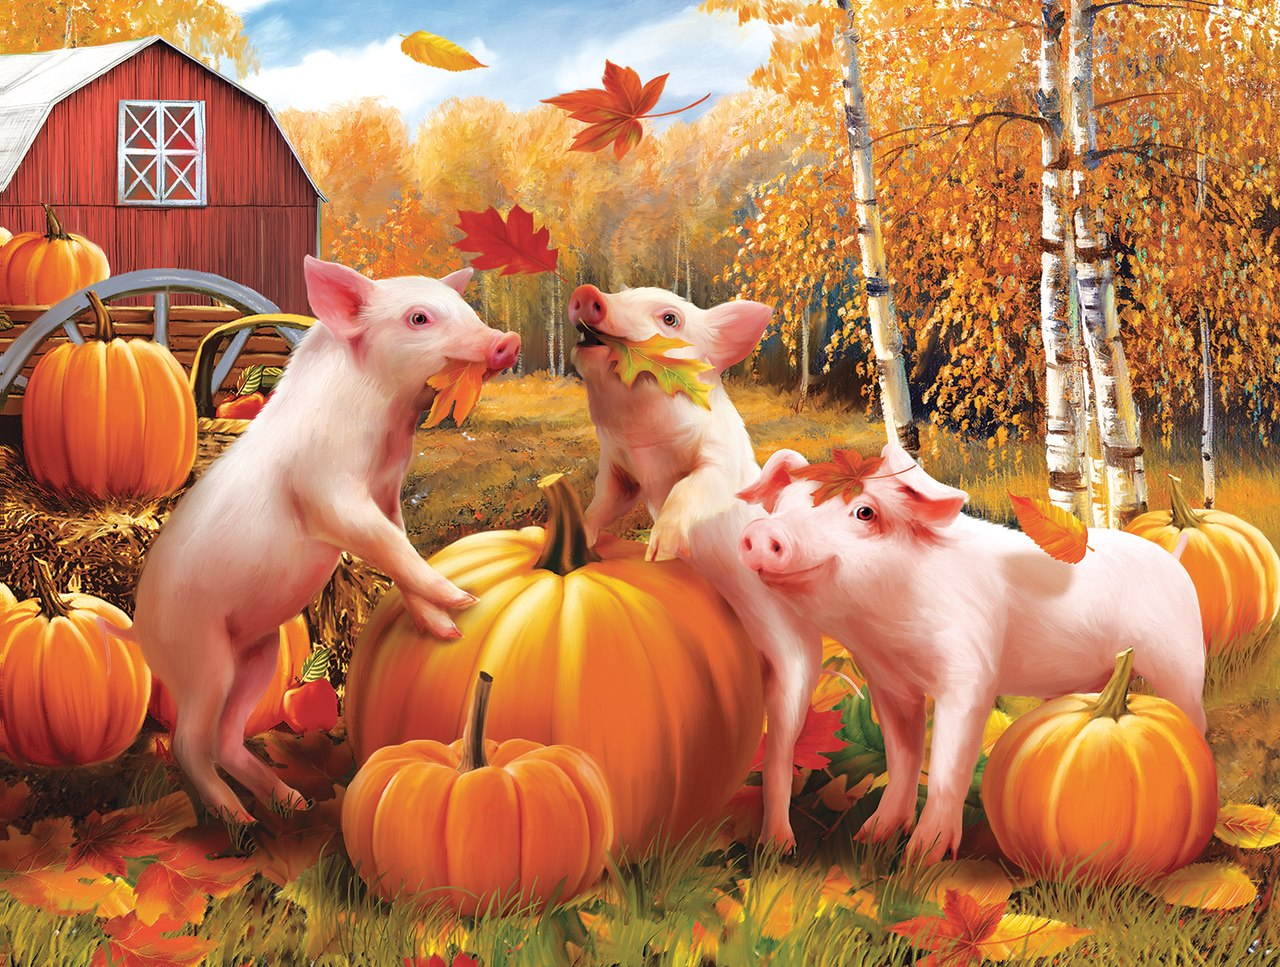 Pigs & Pumpkins - 300pc Jigsaw Puzzle by Sunsout  			  					NEW